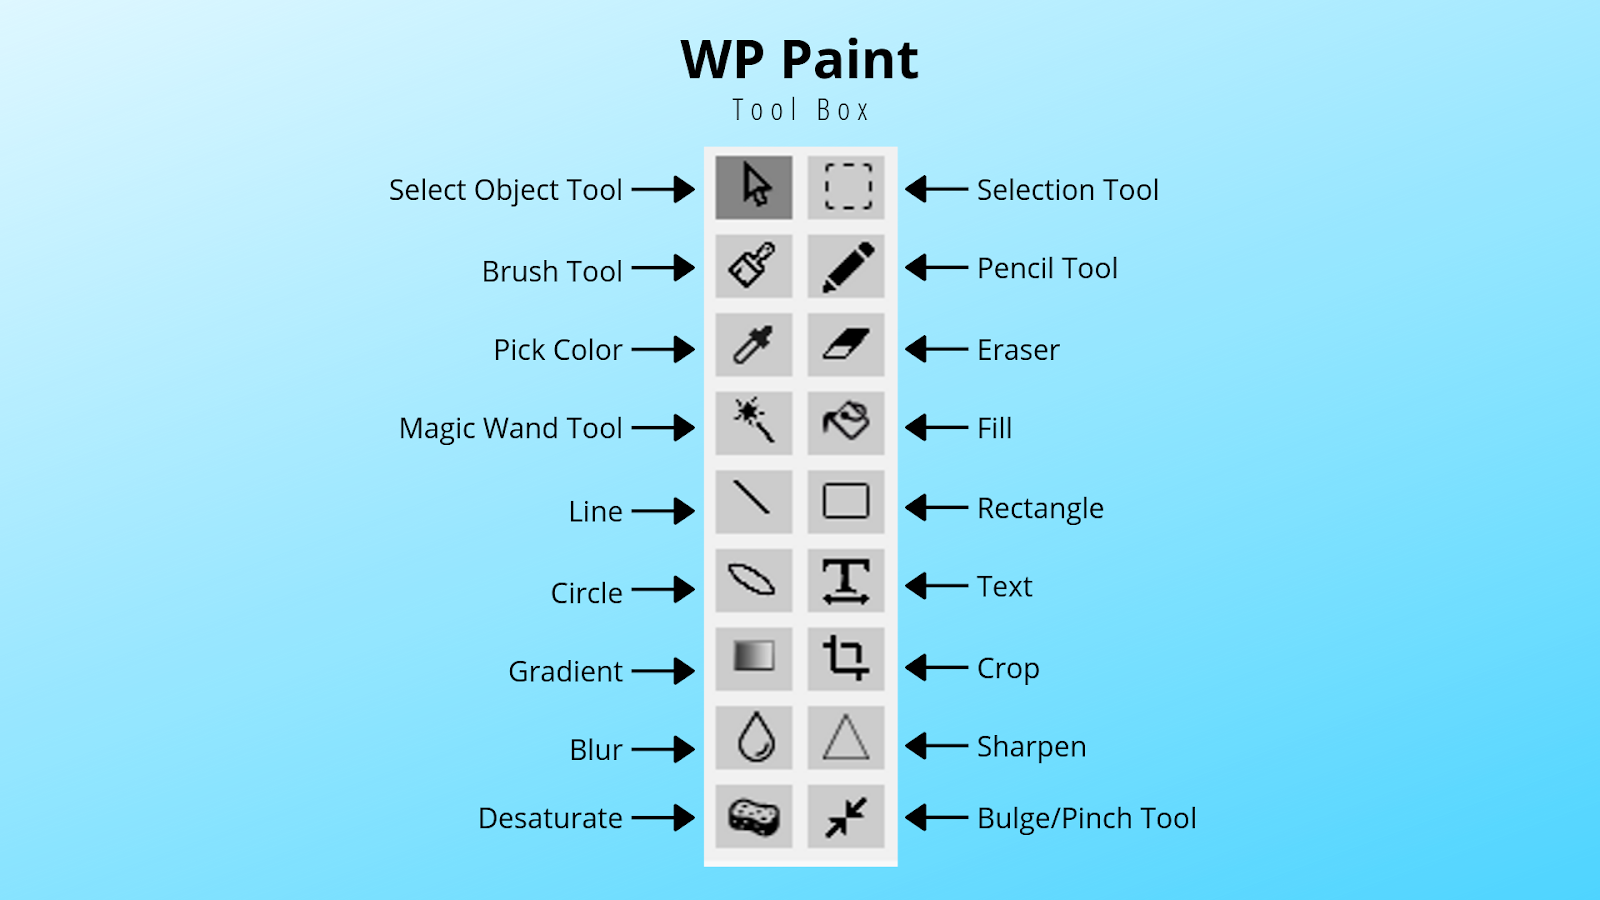 WP Pain Features